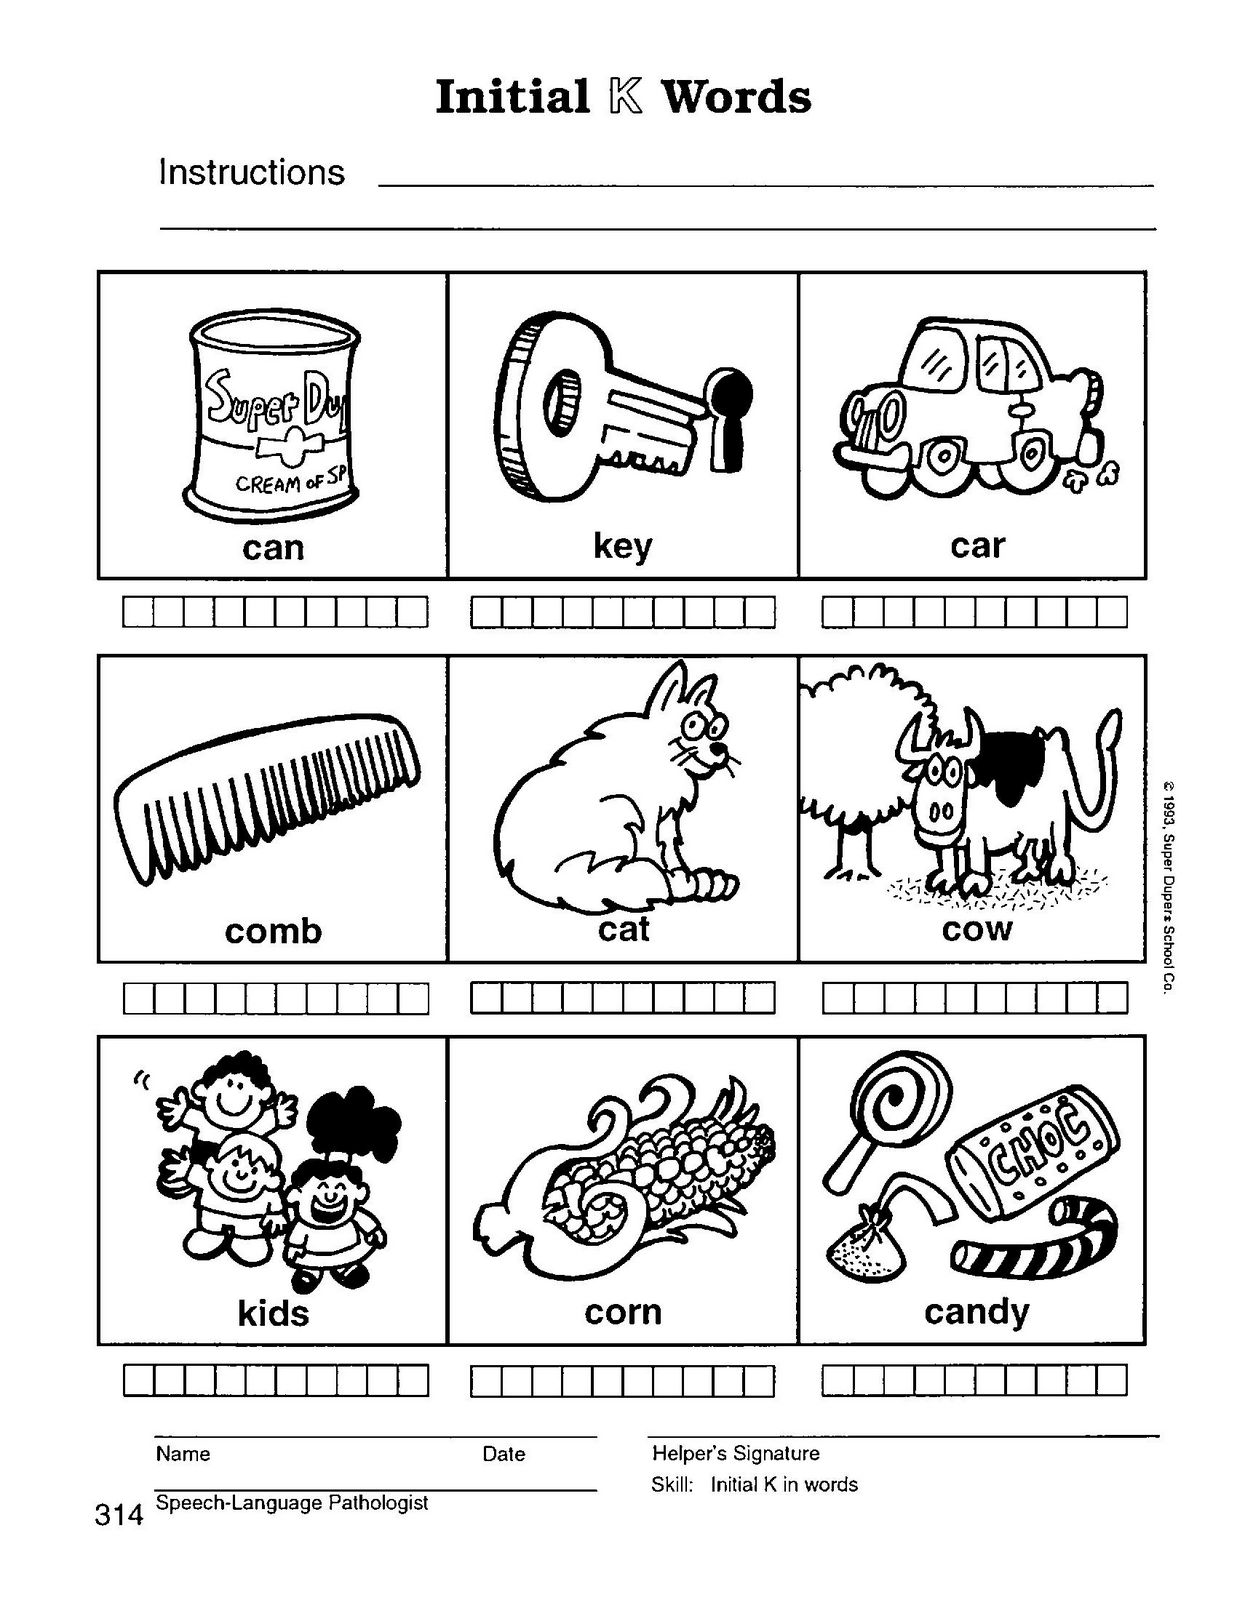 Speech therapy with miss nicole k initial words k initial words sciox Images